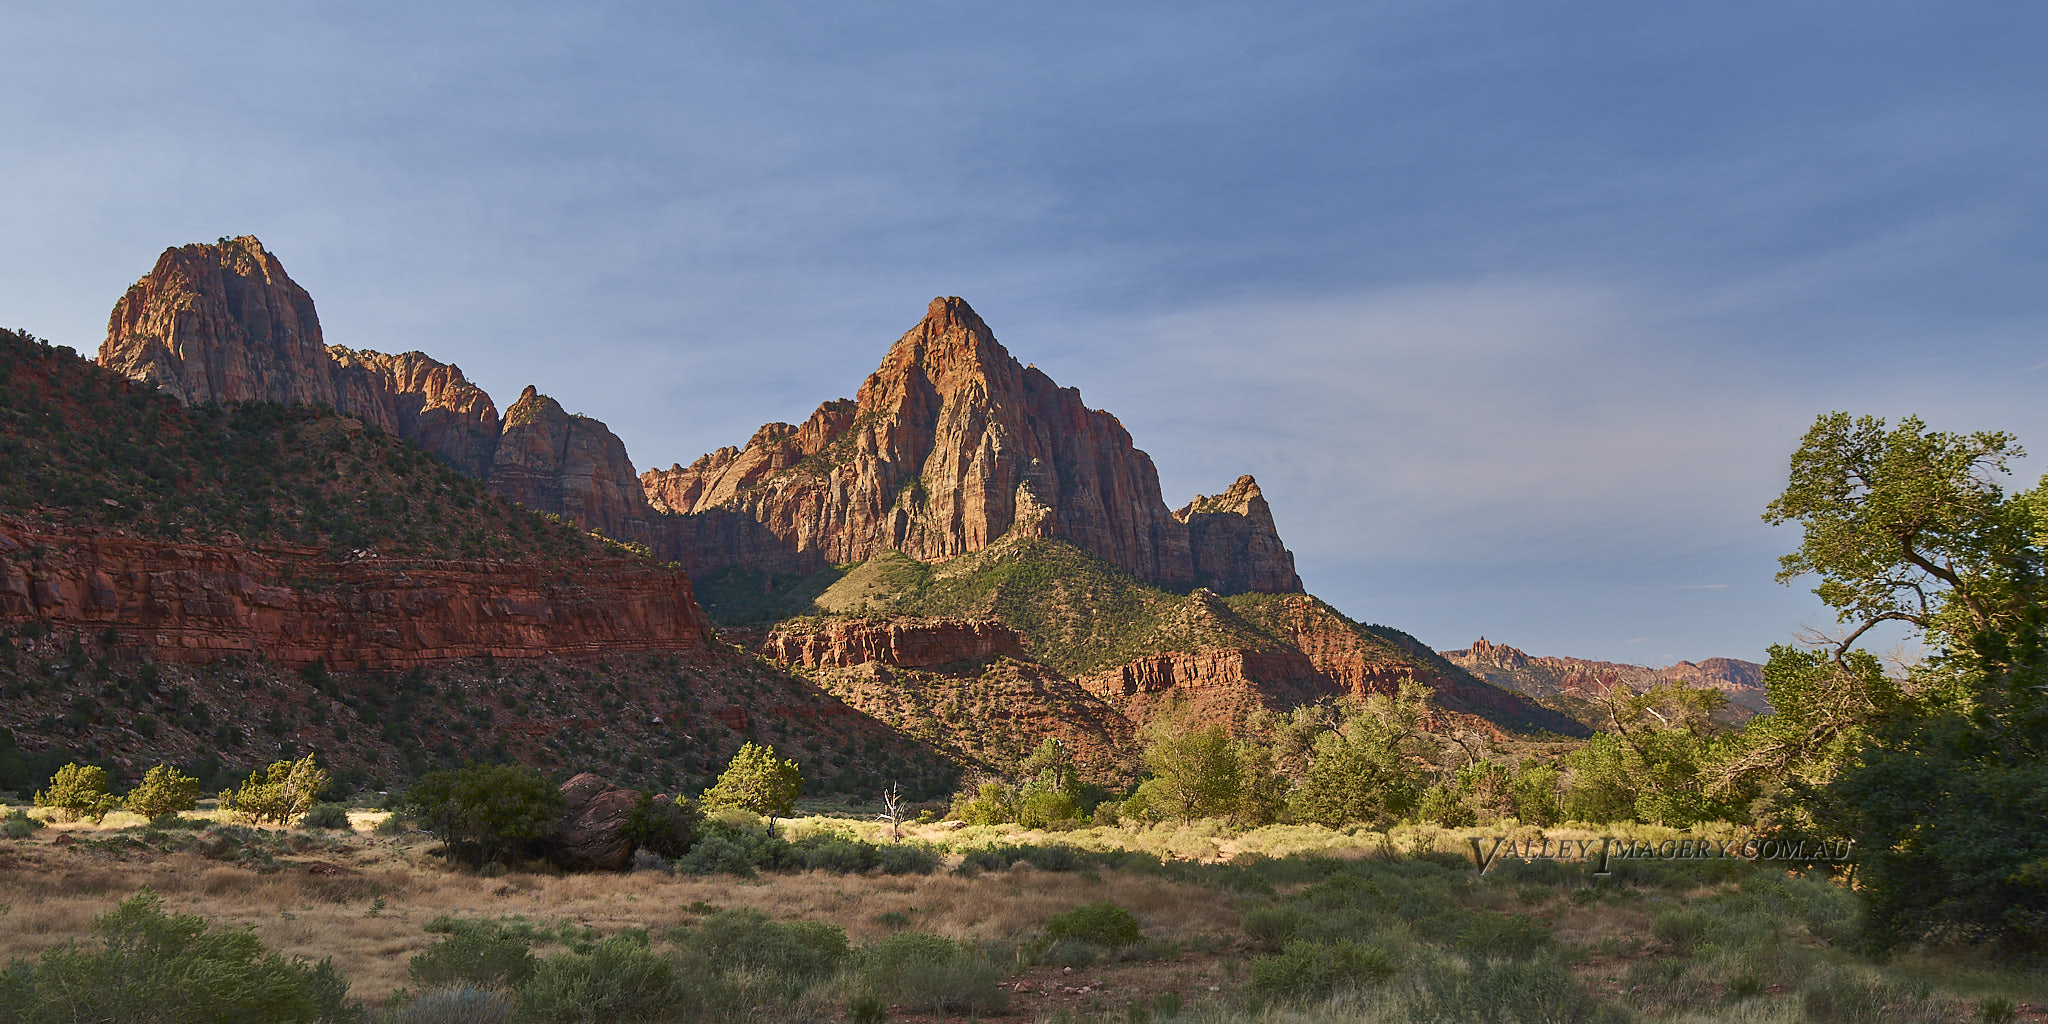 The Watchman from the Payrus trail